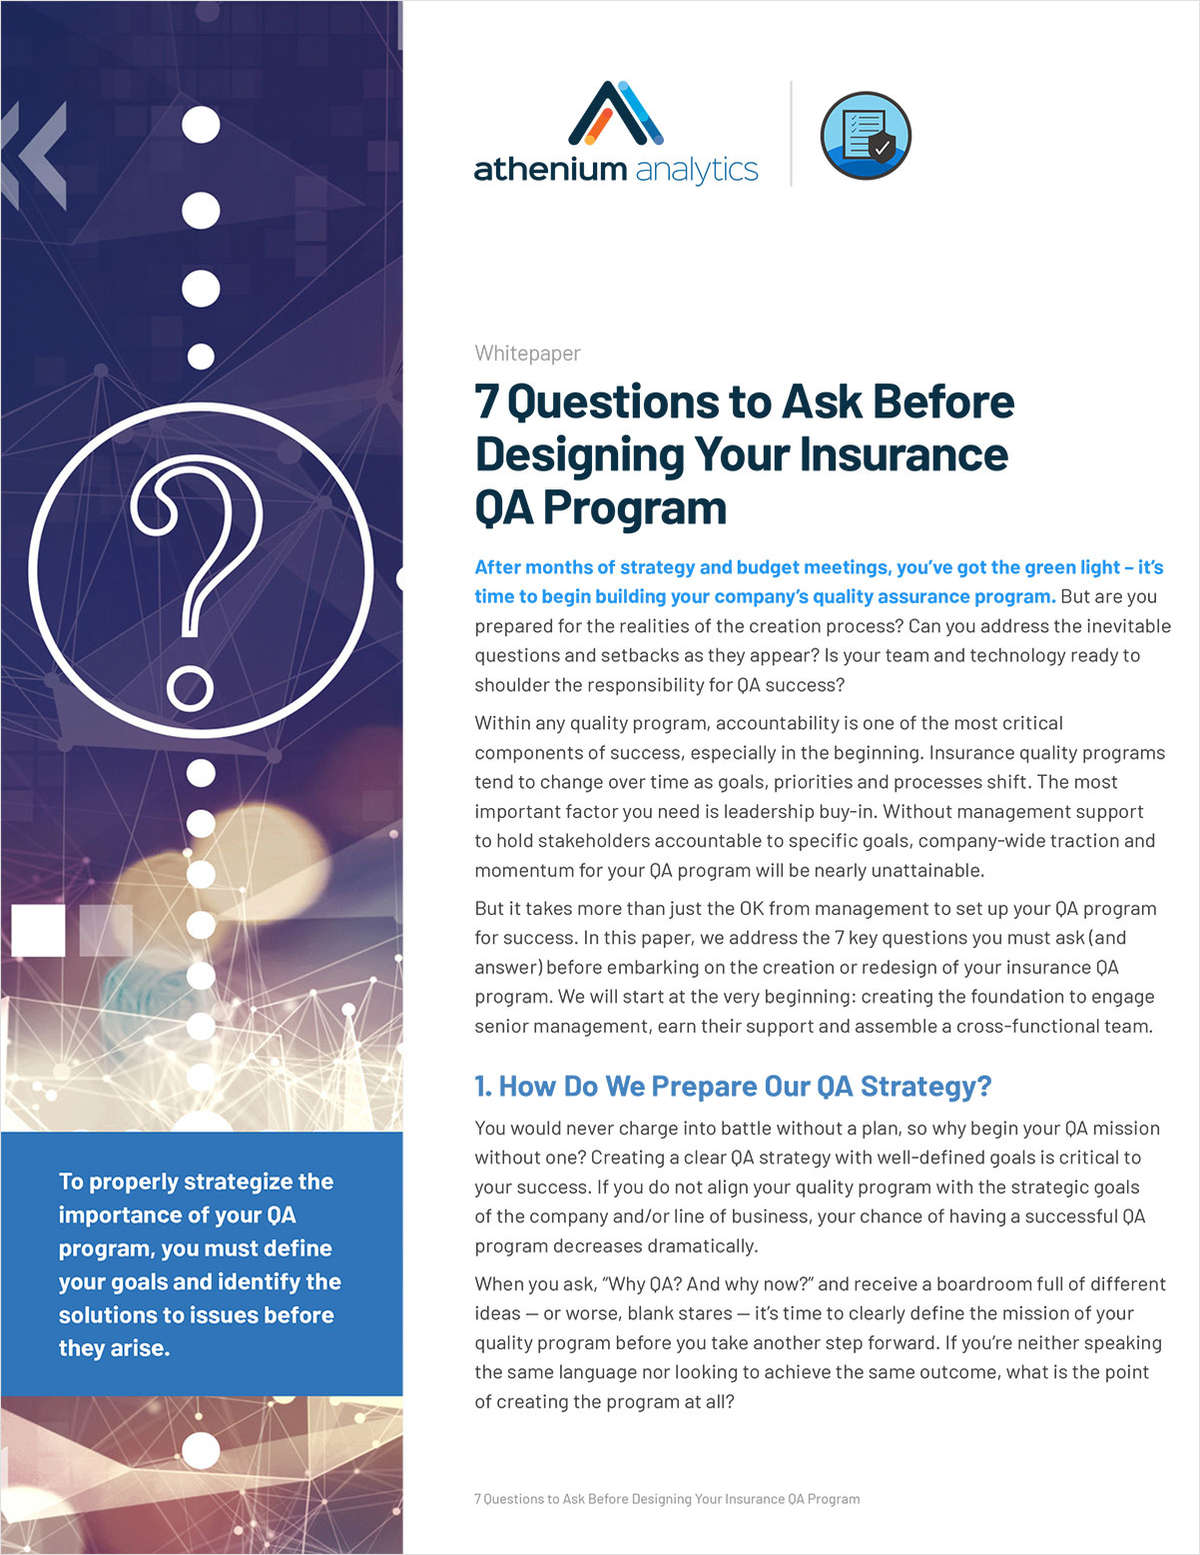 7 Questions to Ask Before Designing Your Insurance QA Program